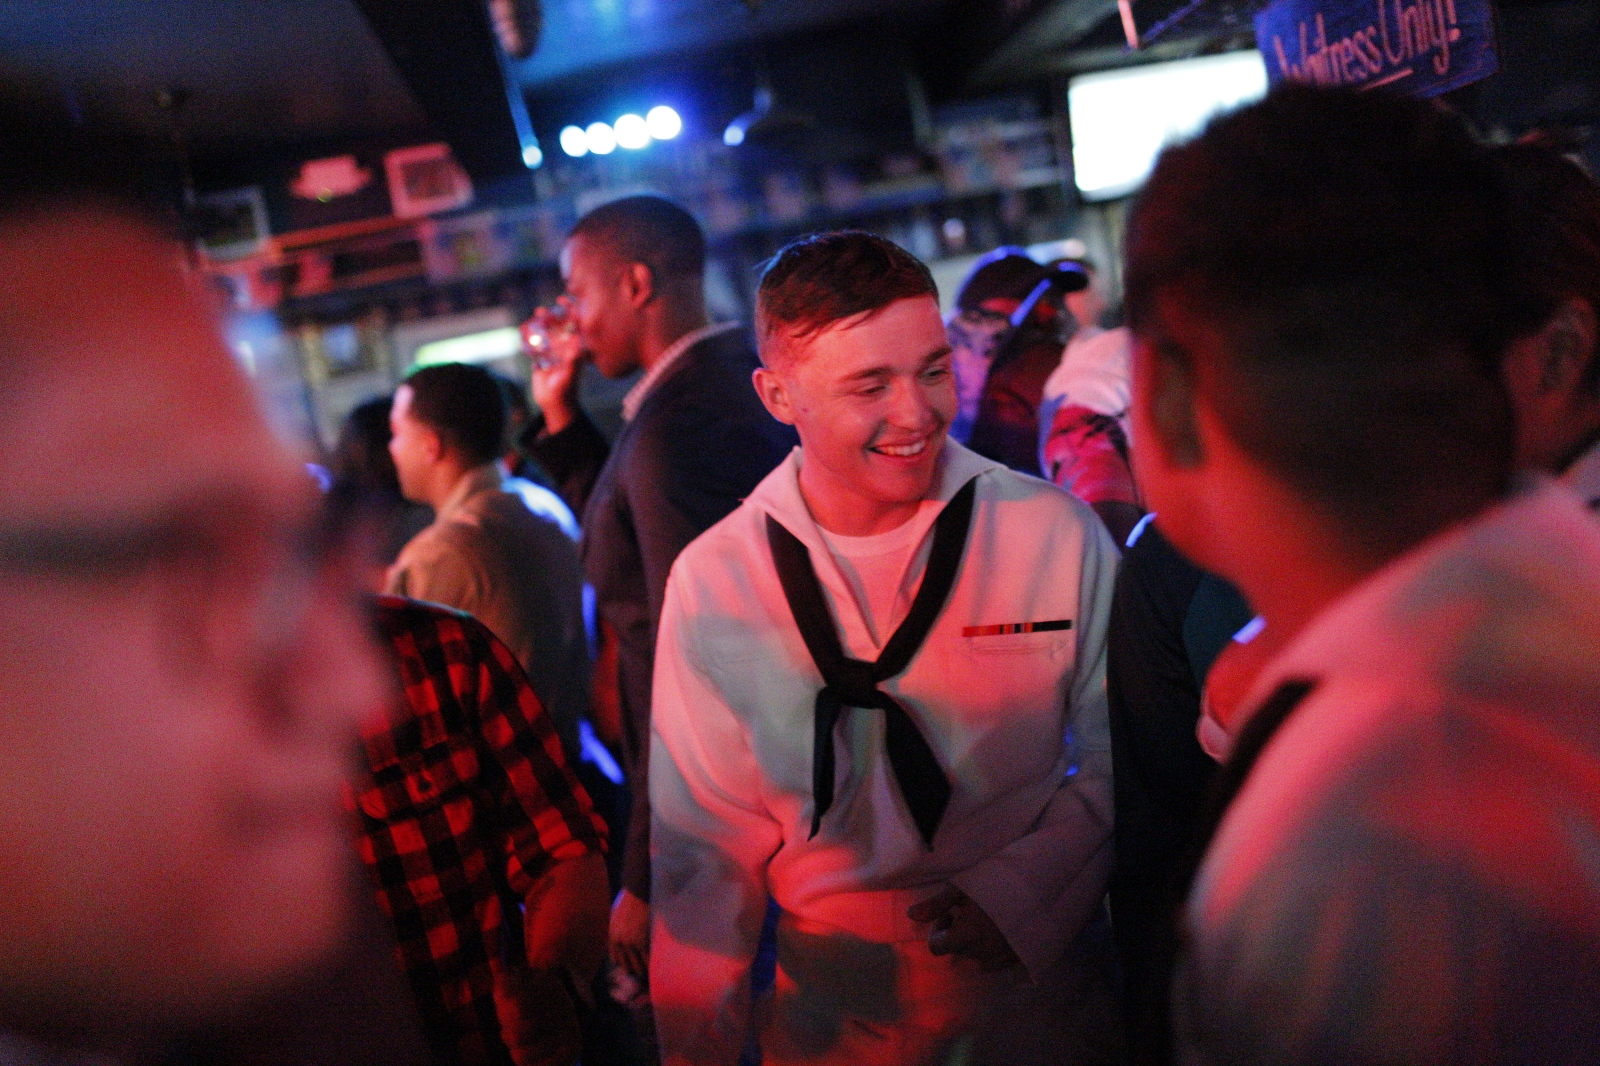 The last night of Fleet Week in New York City's Times Sq. Sailors and Marines party till the curfew until they have to be back onboard ship by 2 AM. May 27, 2018. (Kevin C Downs/Agence Cosmos)